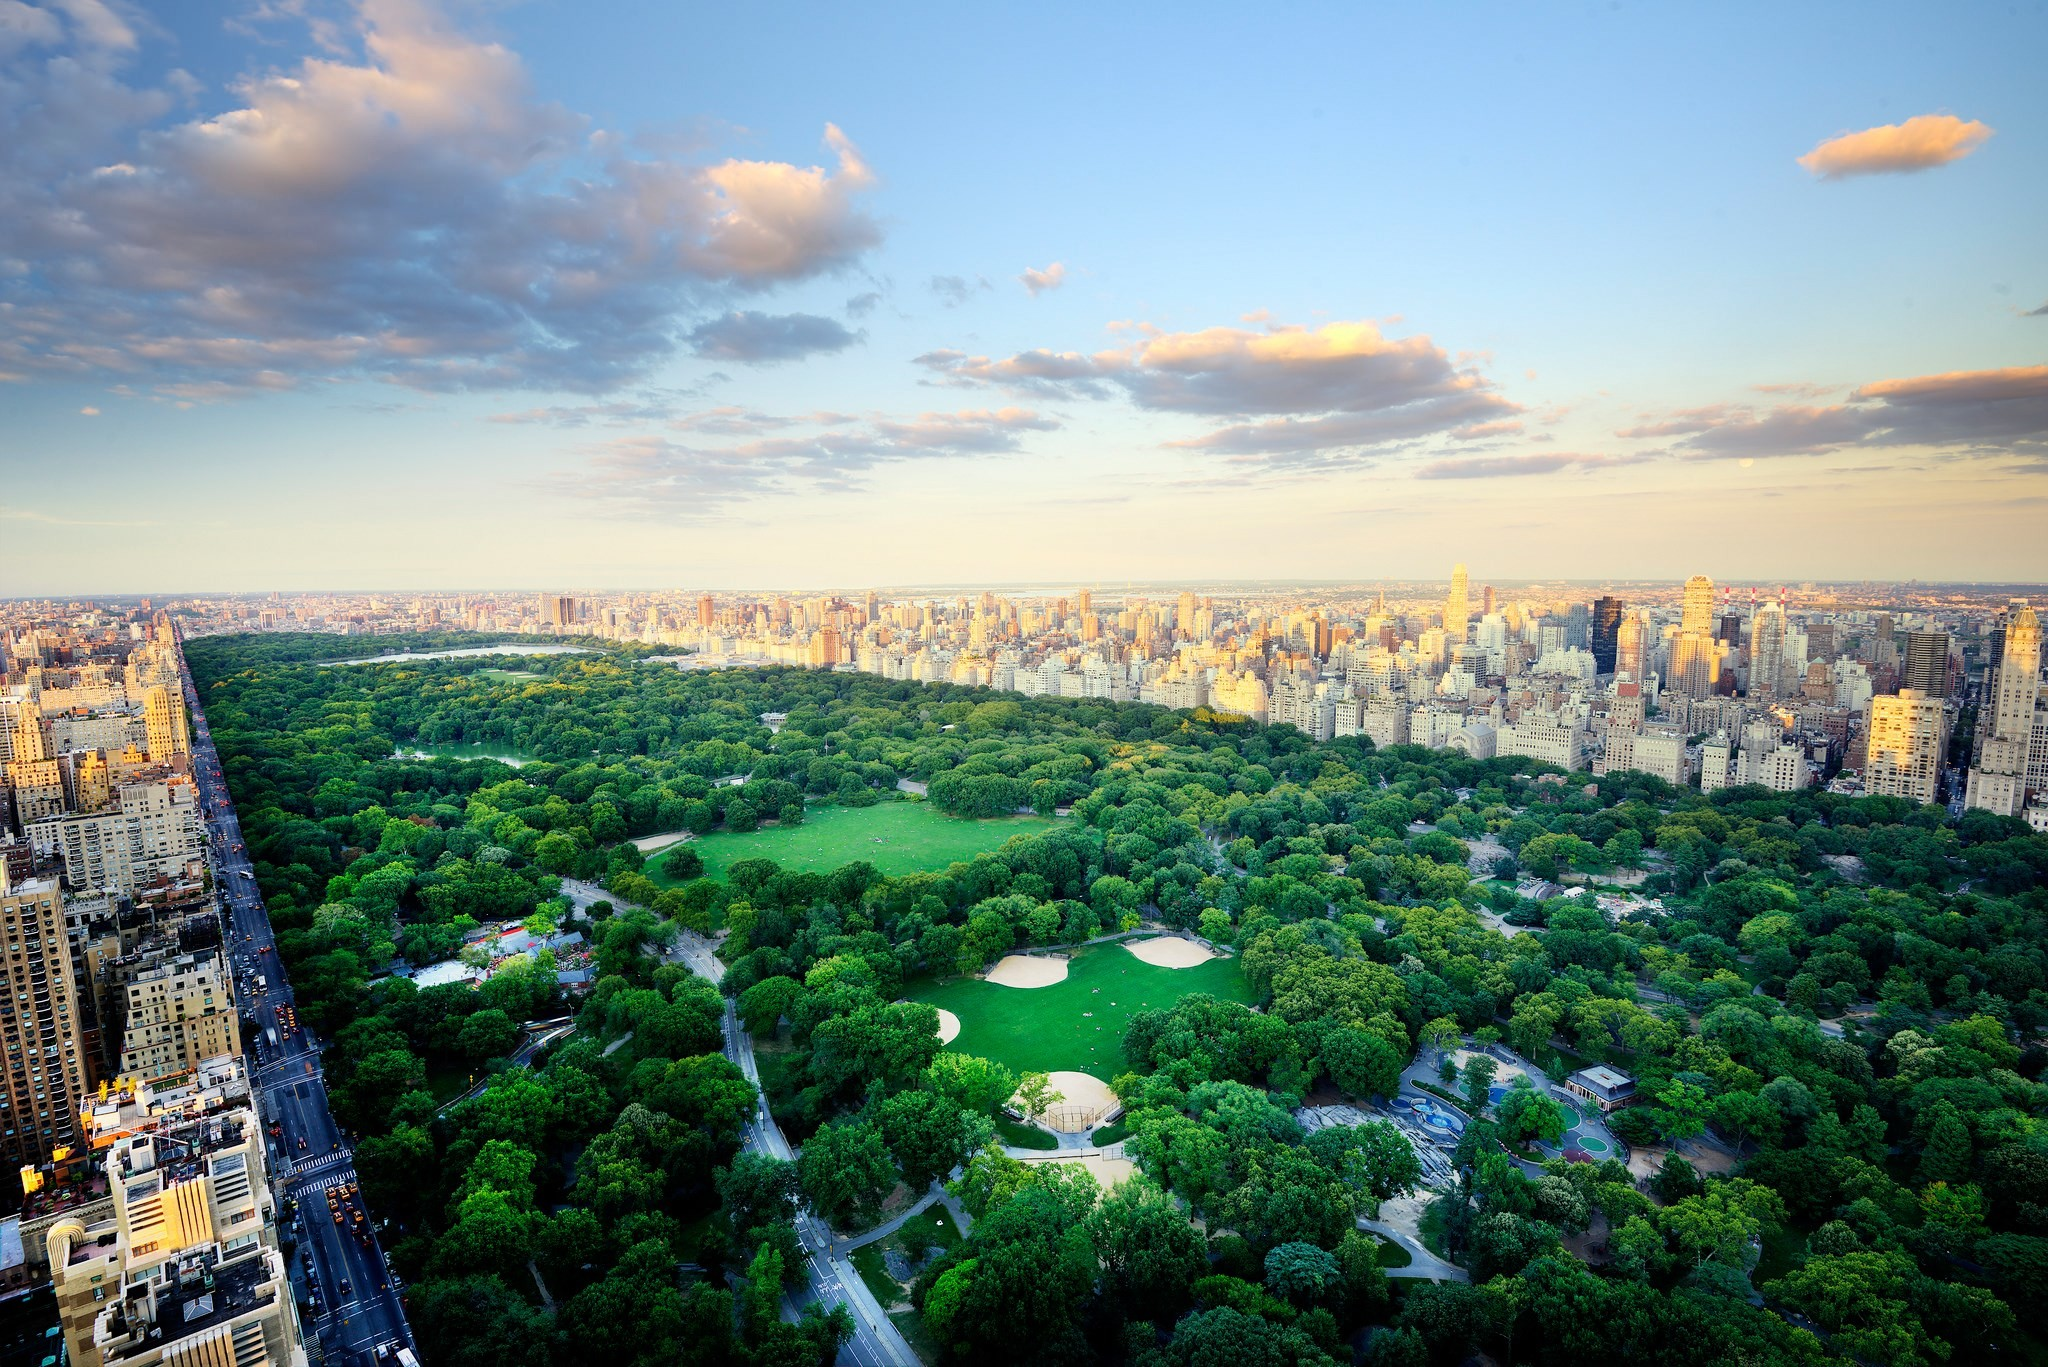 2048x1367 1520574, hd wallpaper central park